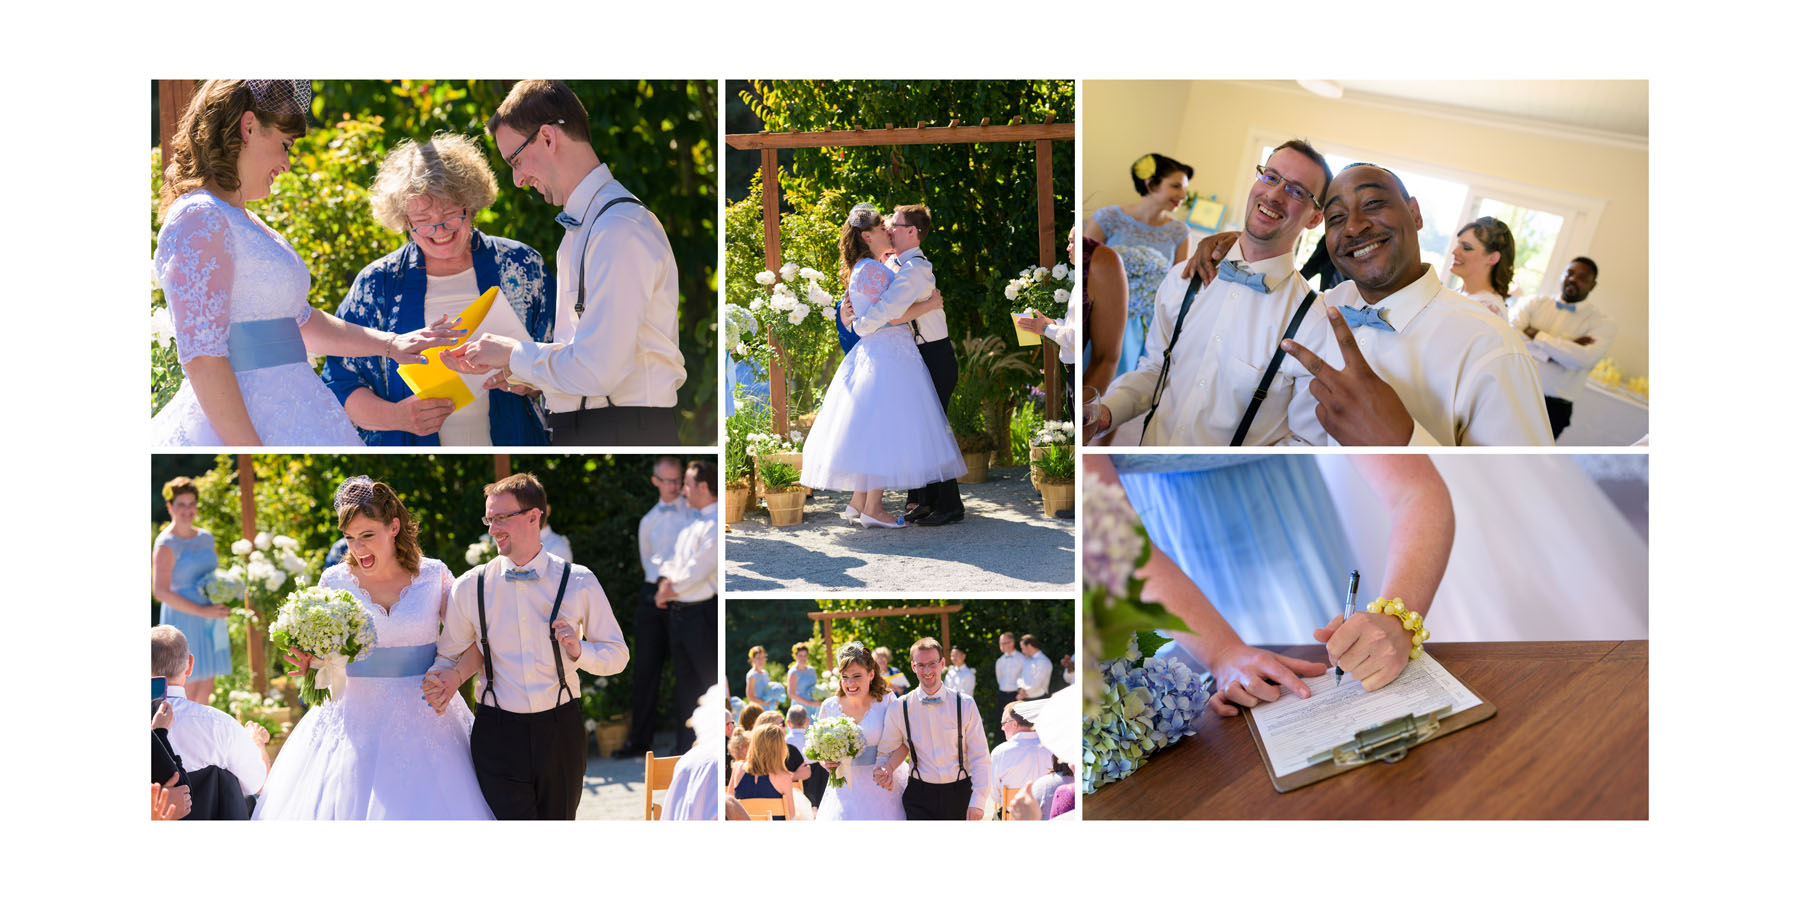 Tying the knot and signing the paperwork - Private Estate wedding in Sebastopol, CA - by Bay Area wedding photographer Chris Schmauch